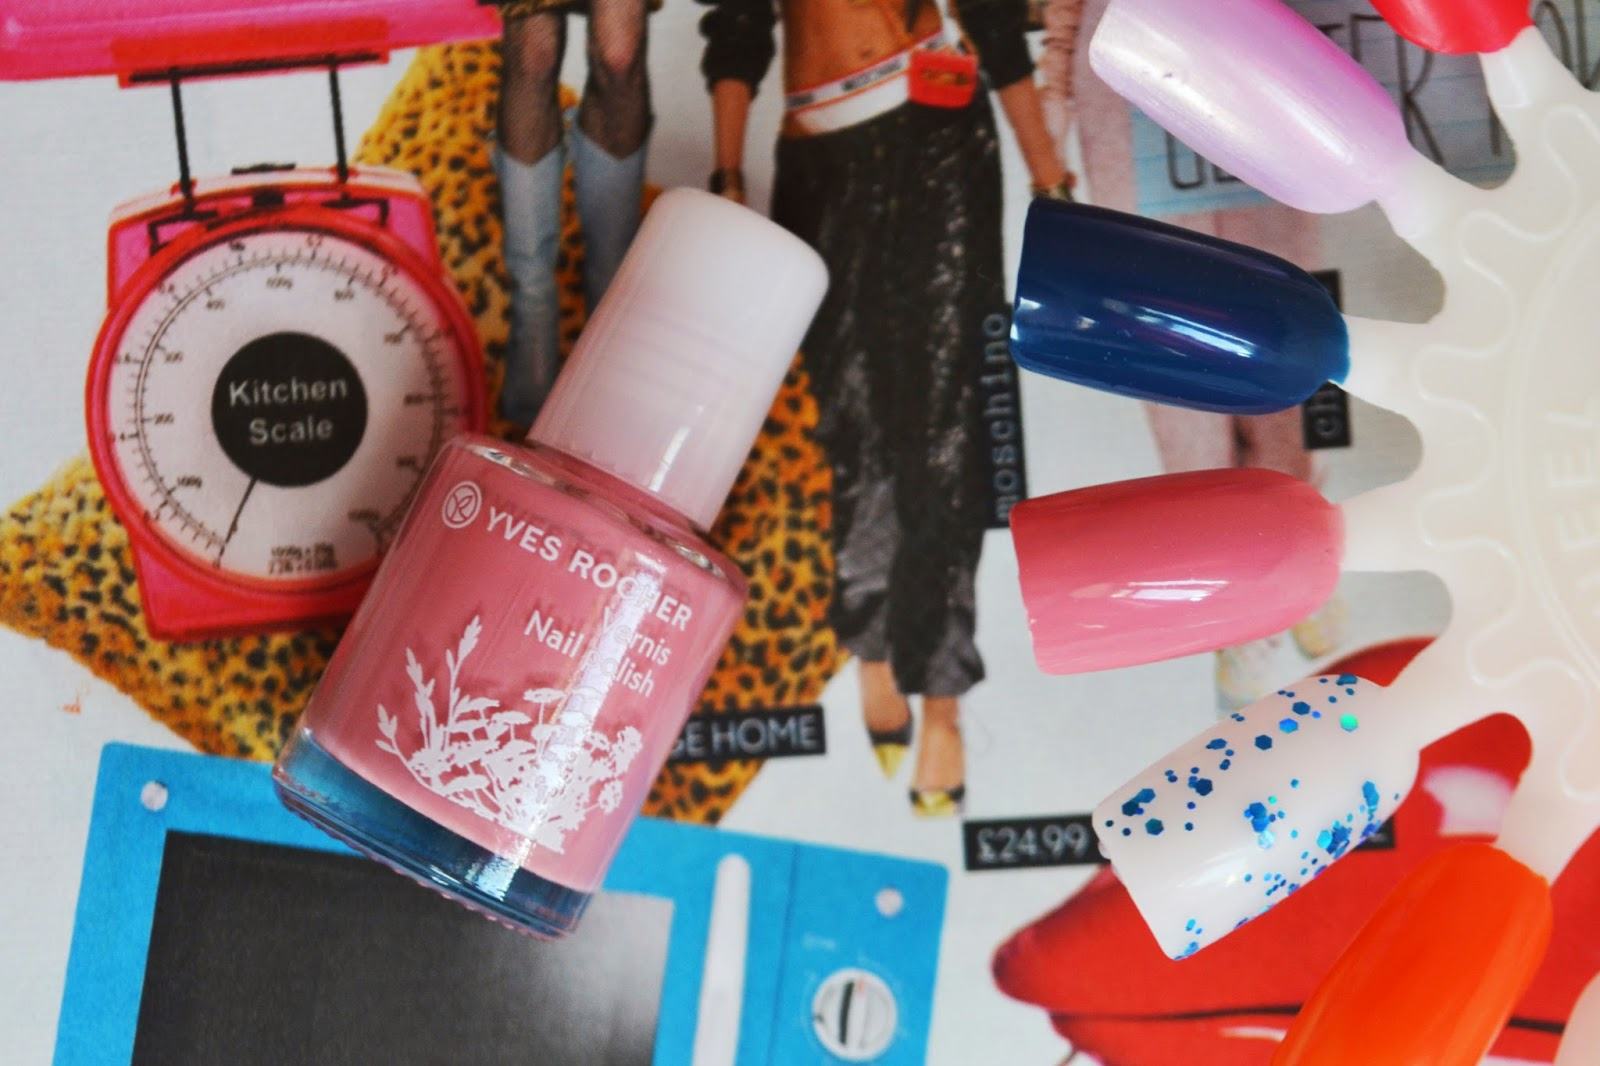 the bottle of pink nail varnish next to a nail wheel